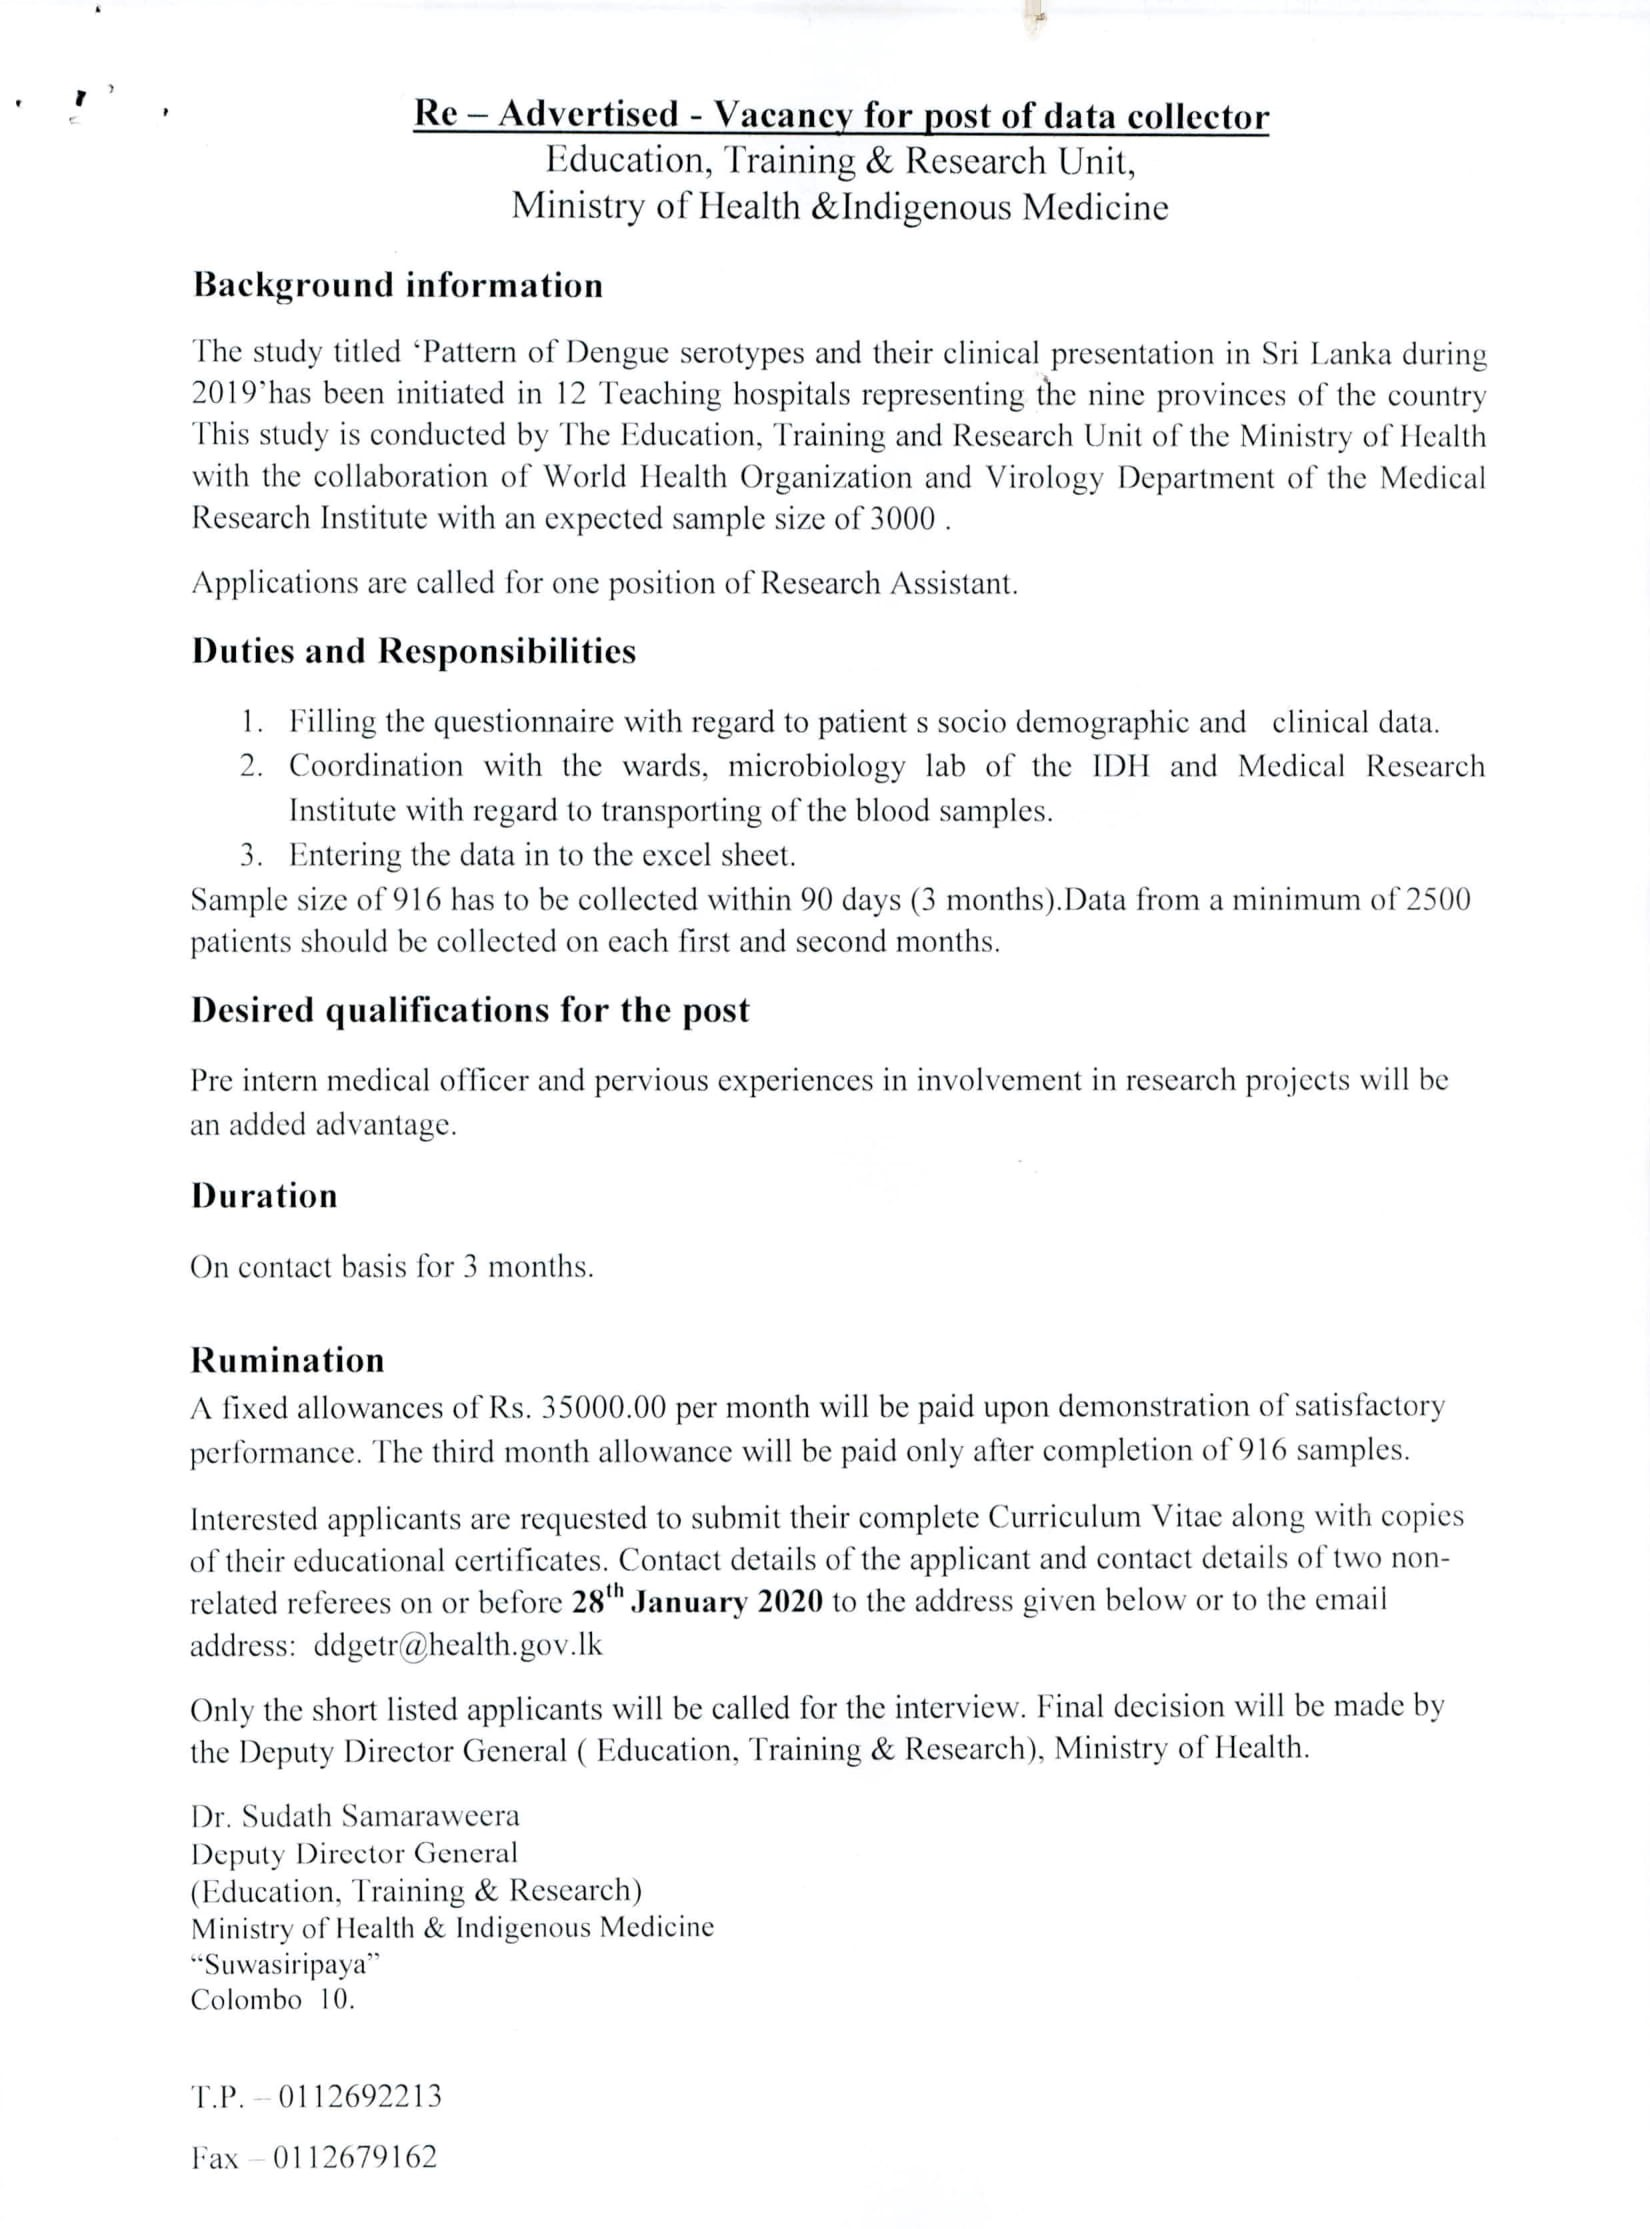 Research Assistant - Ministry of Health & Indigenous Medicine